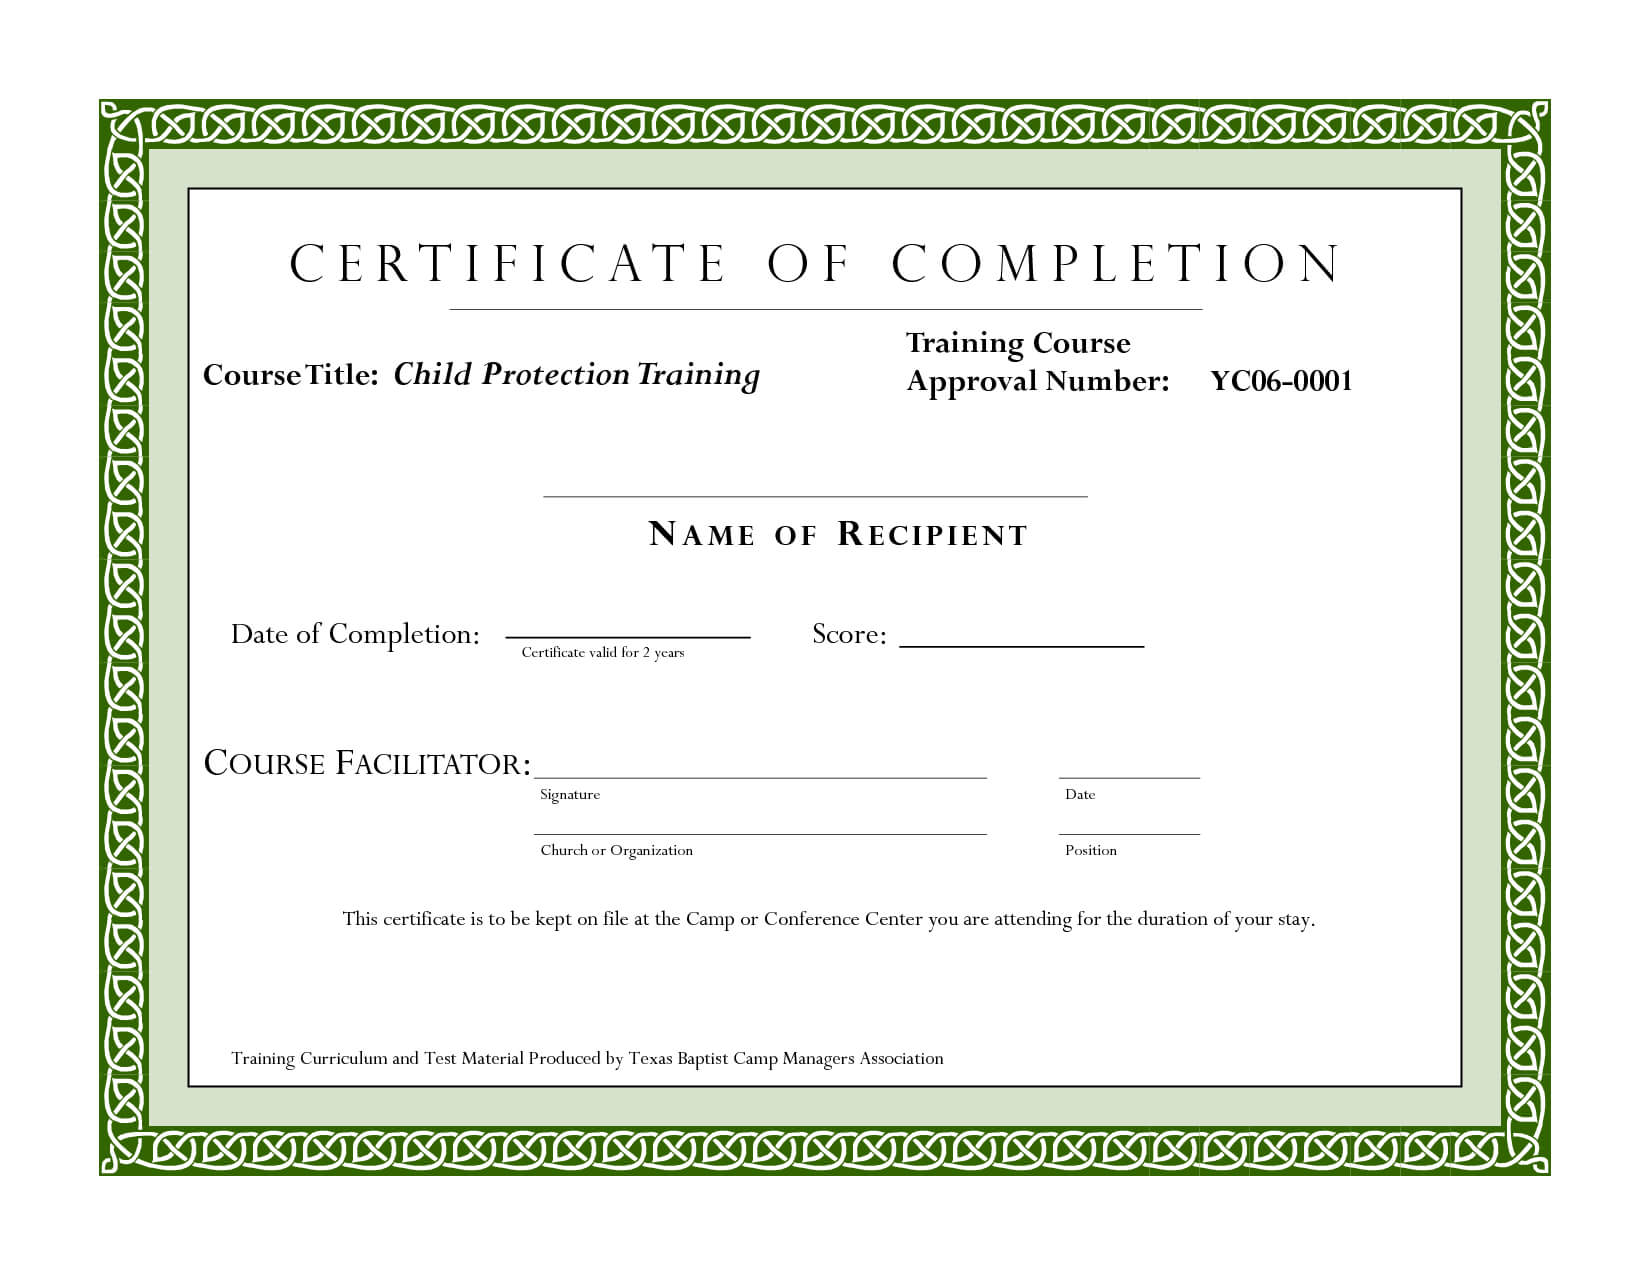 Course Completion Certificate Template | Certificate Of in Life Membership Certificate Templates